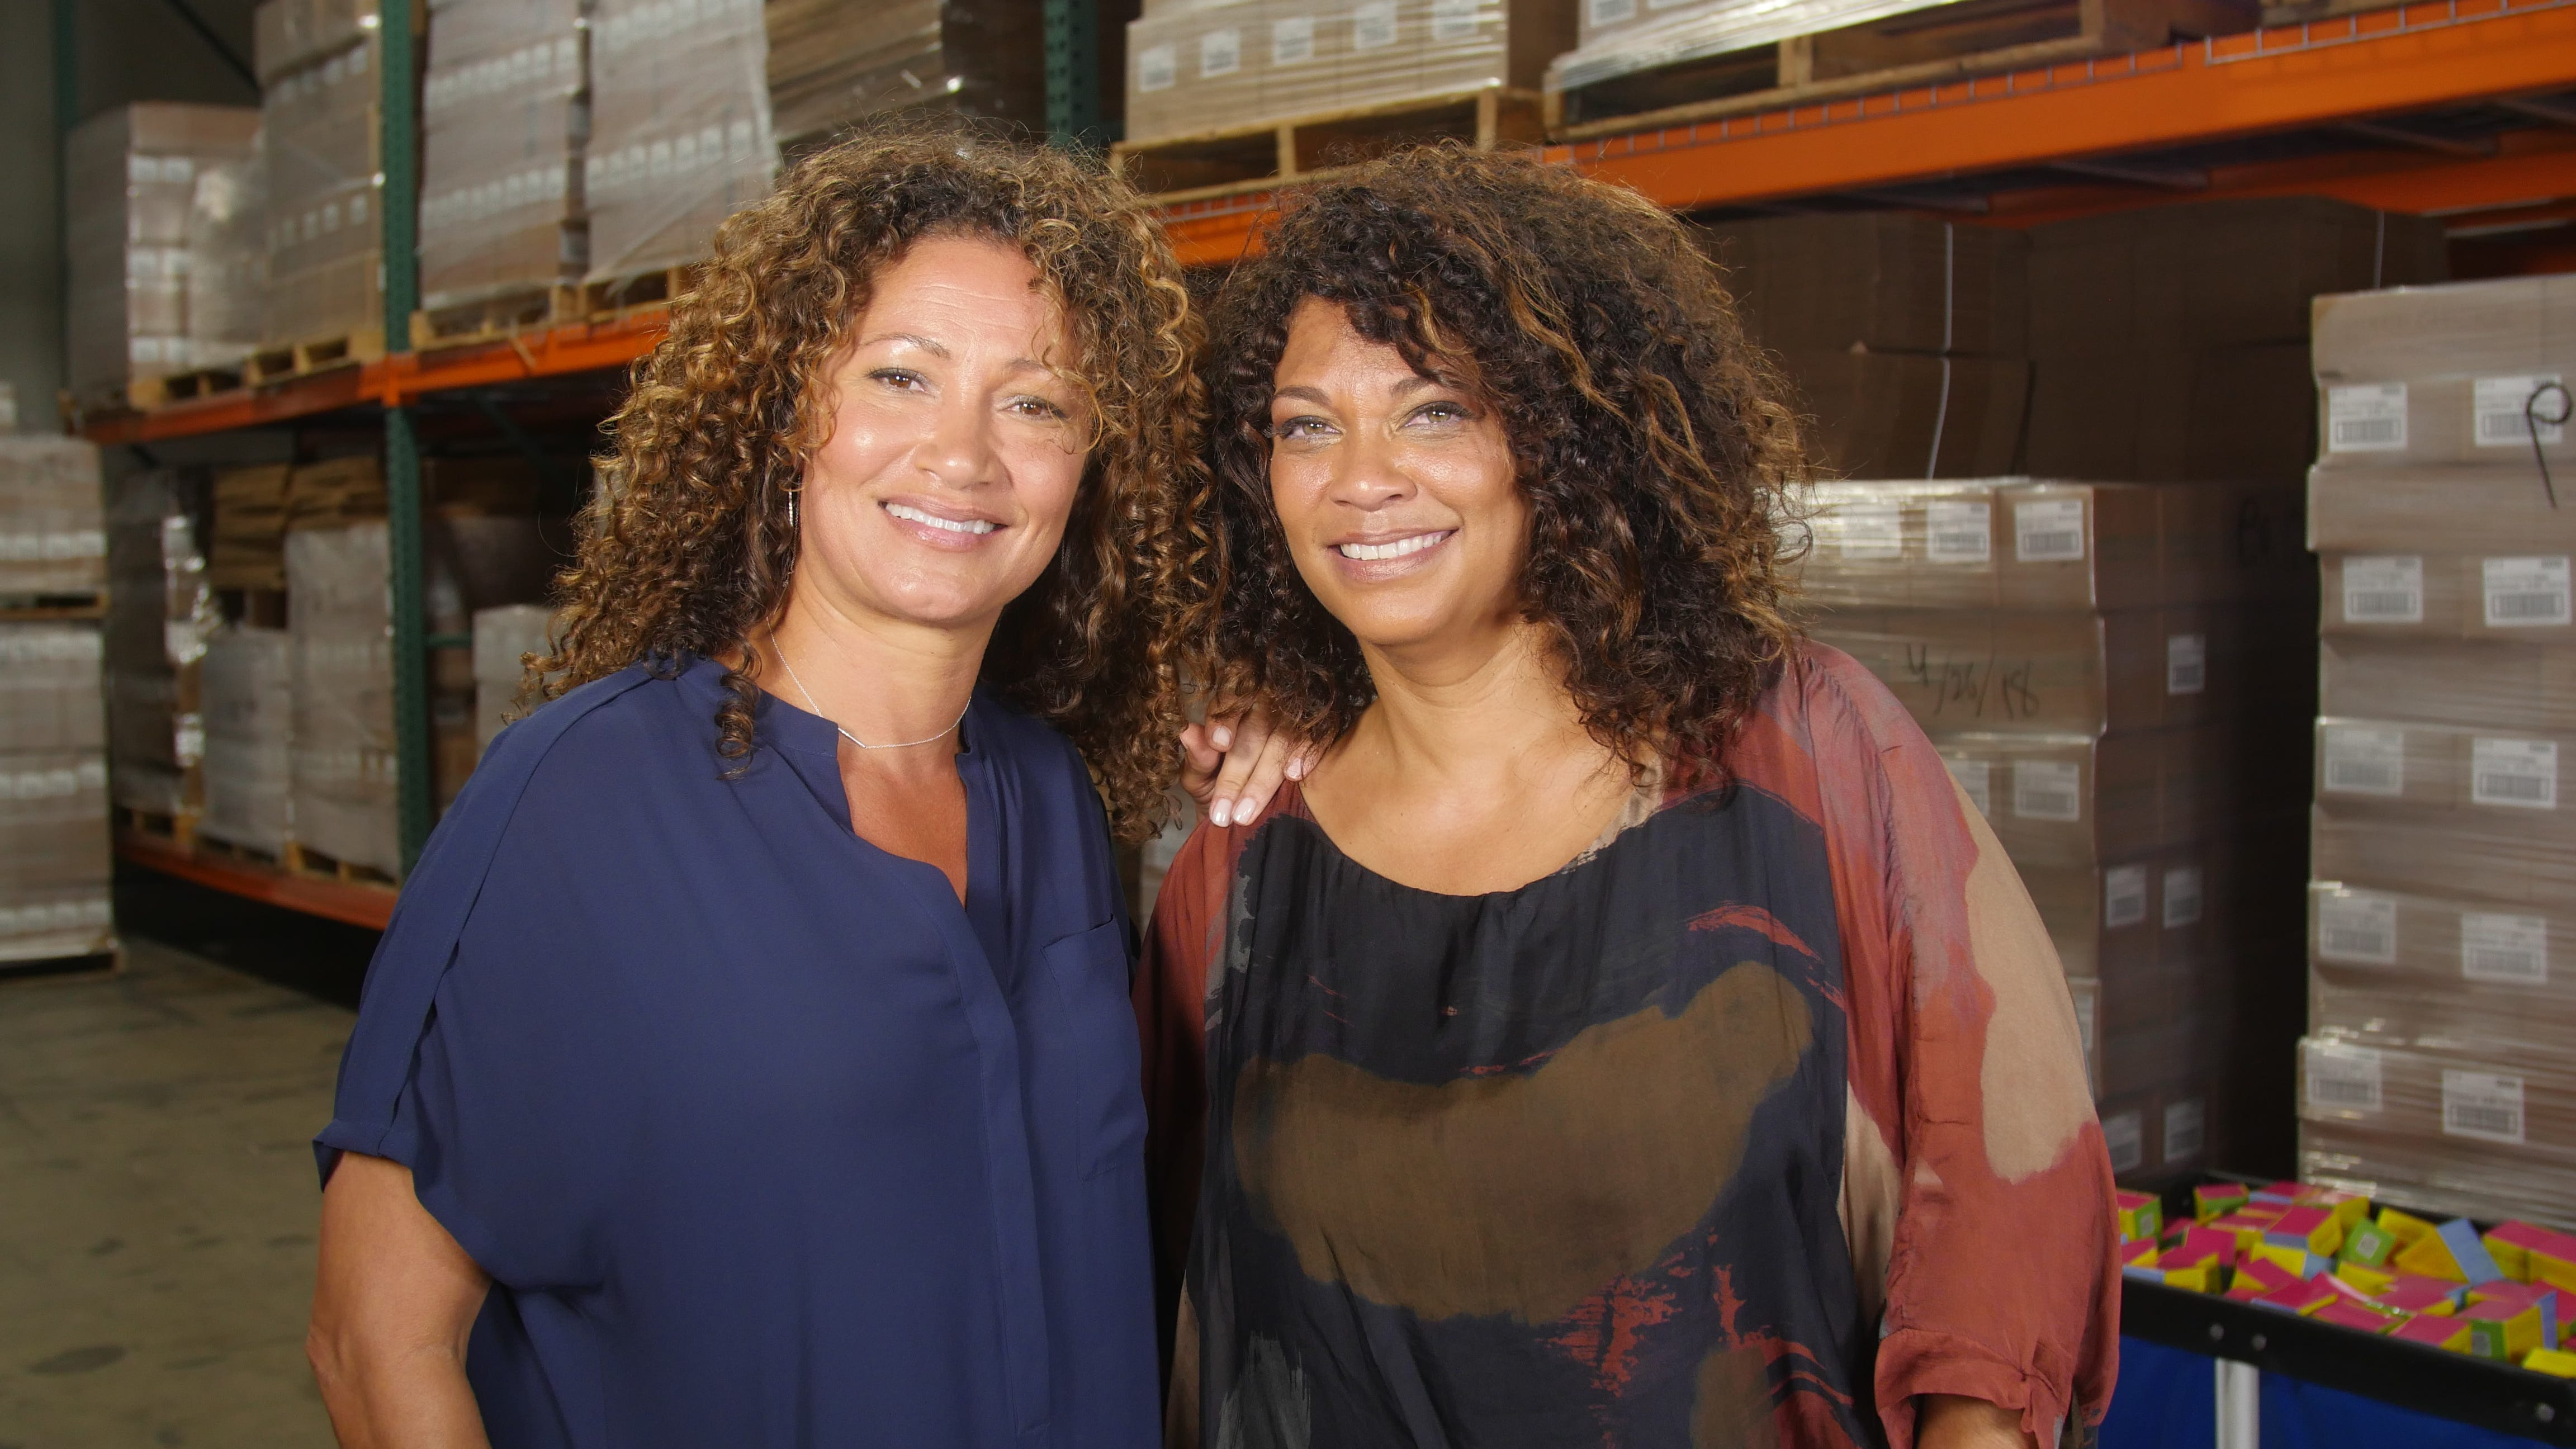 Mixed Chicks founders give crowded hair-care market a multi-ethnic twist